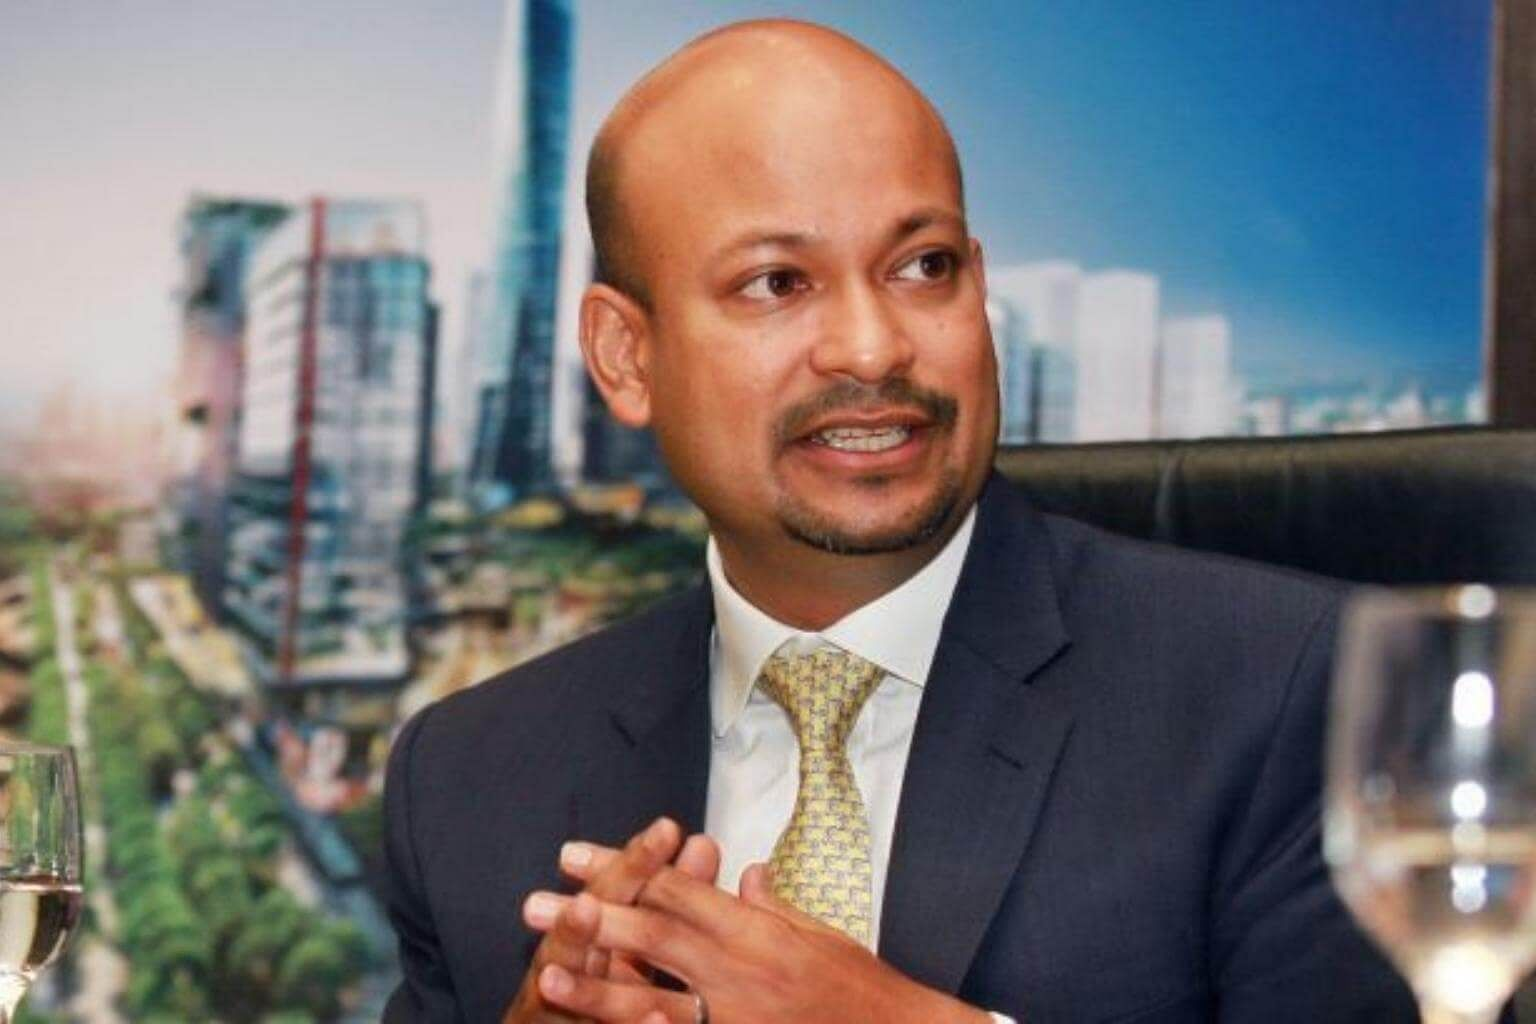 Mdb President Arul Kanda Considering Legal Action Against Finance Minister Over Personals Se Asia News Top Stories The Straits Times